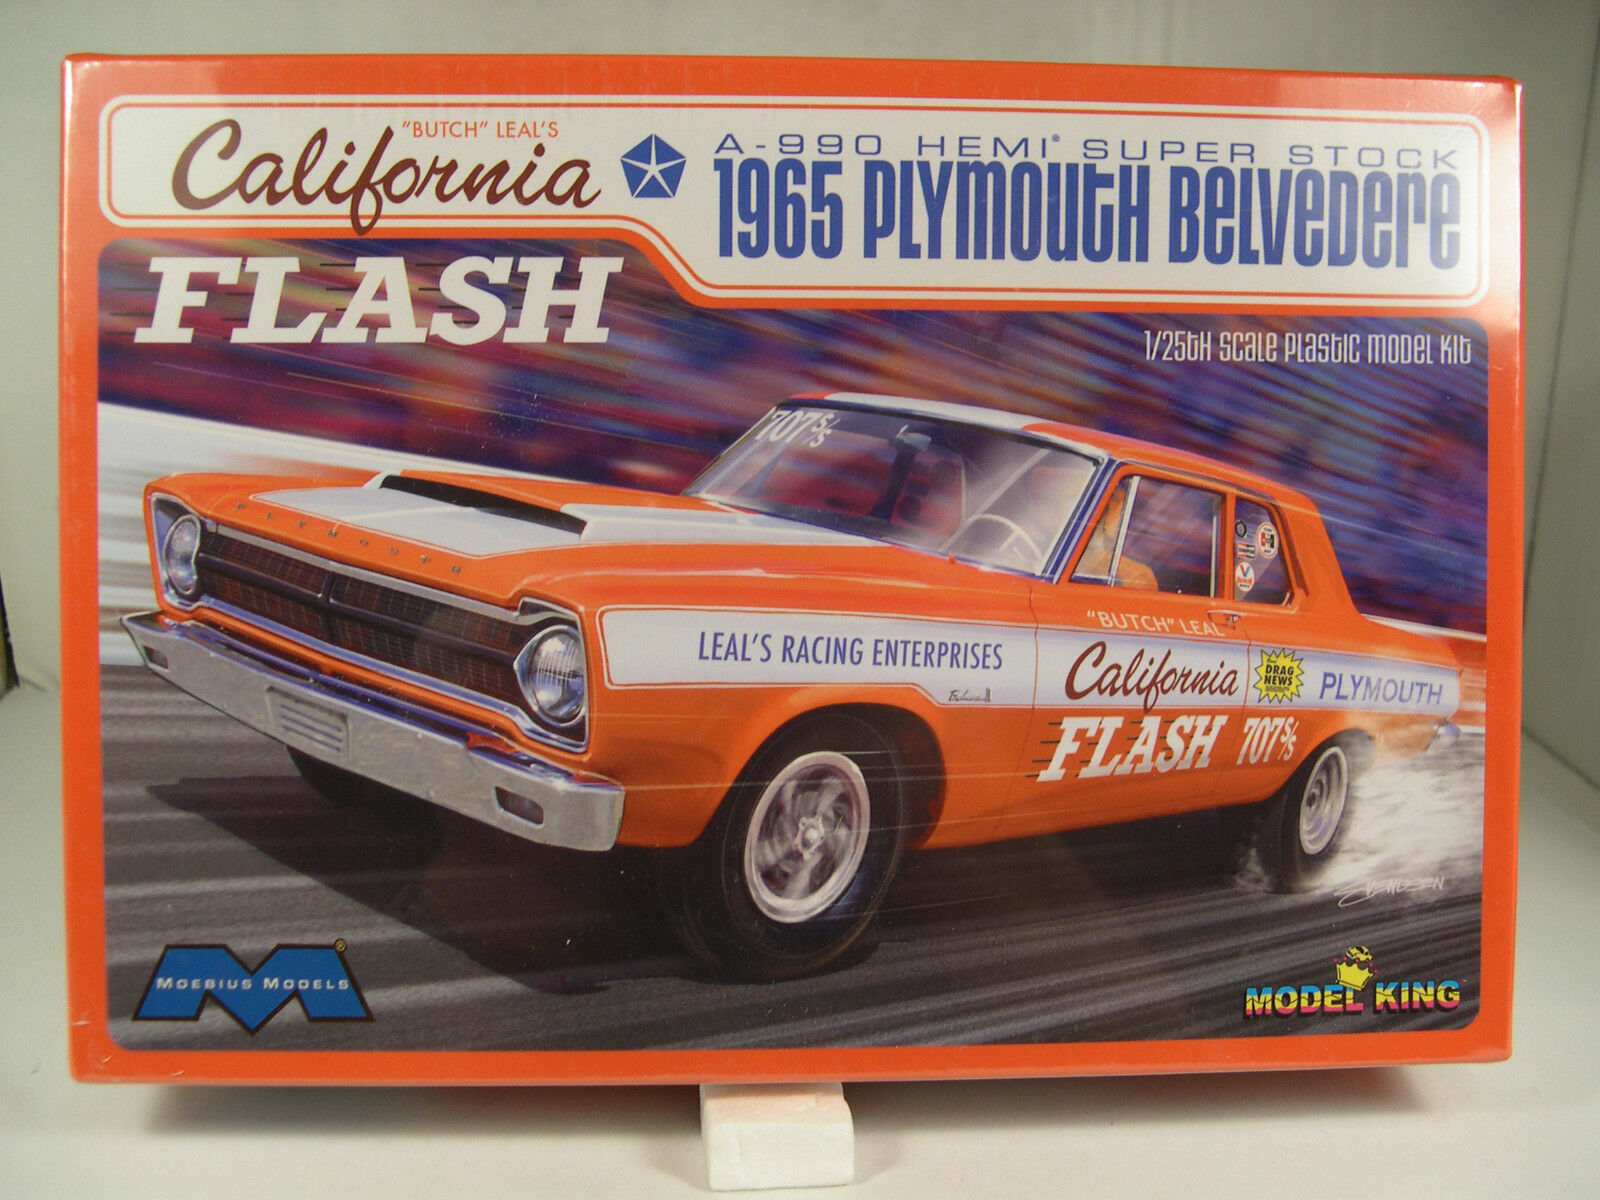 BUTCH LEAL CALIFORNIA FLASH 1965 PLYMOUTH SS MODEL KING 1 1 1 25 SCALE PLASTIC KIT 6a8188